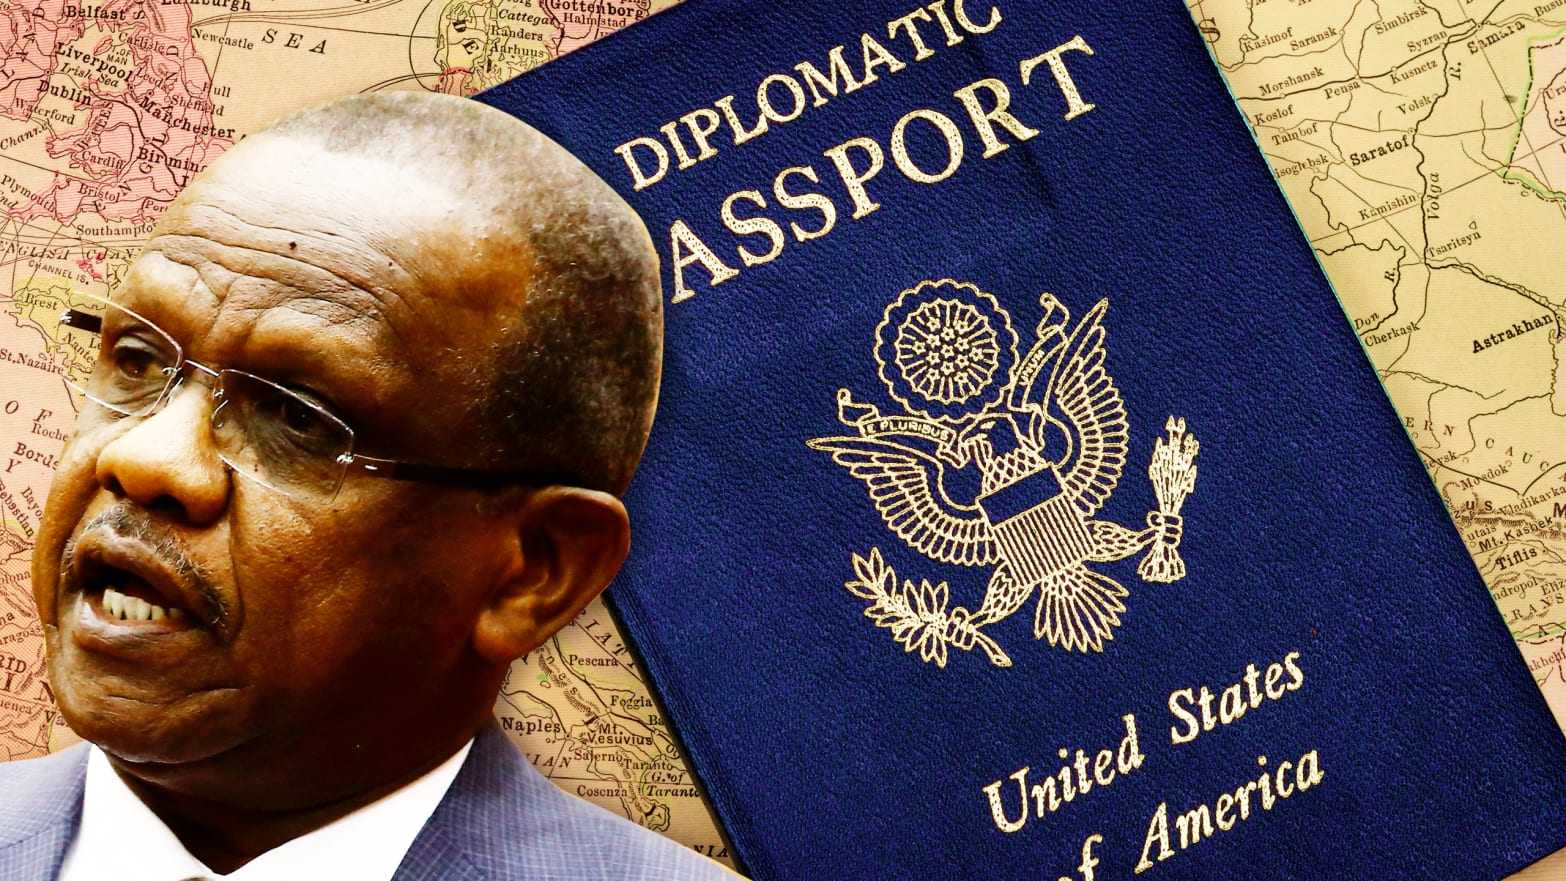 ae8fdfa16f5871 This Terror Sponsor Just Got Into the U.S. on a Diplomatic Passport